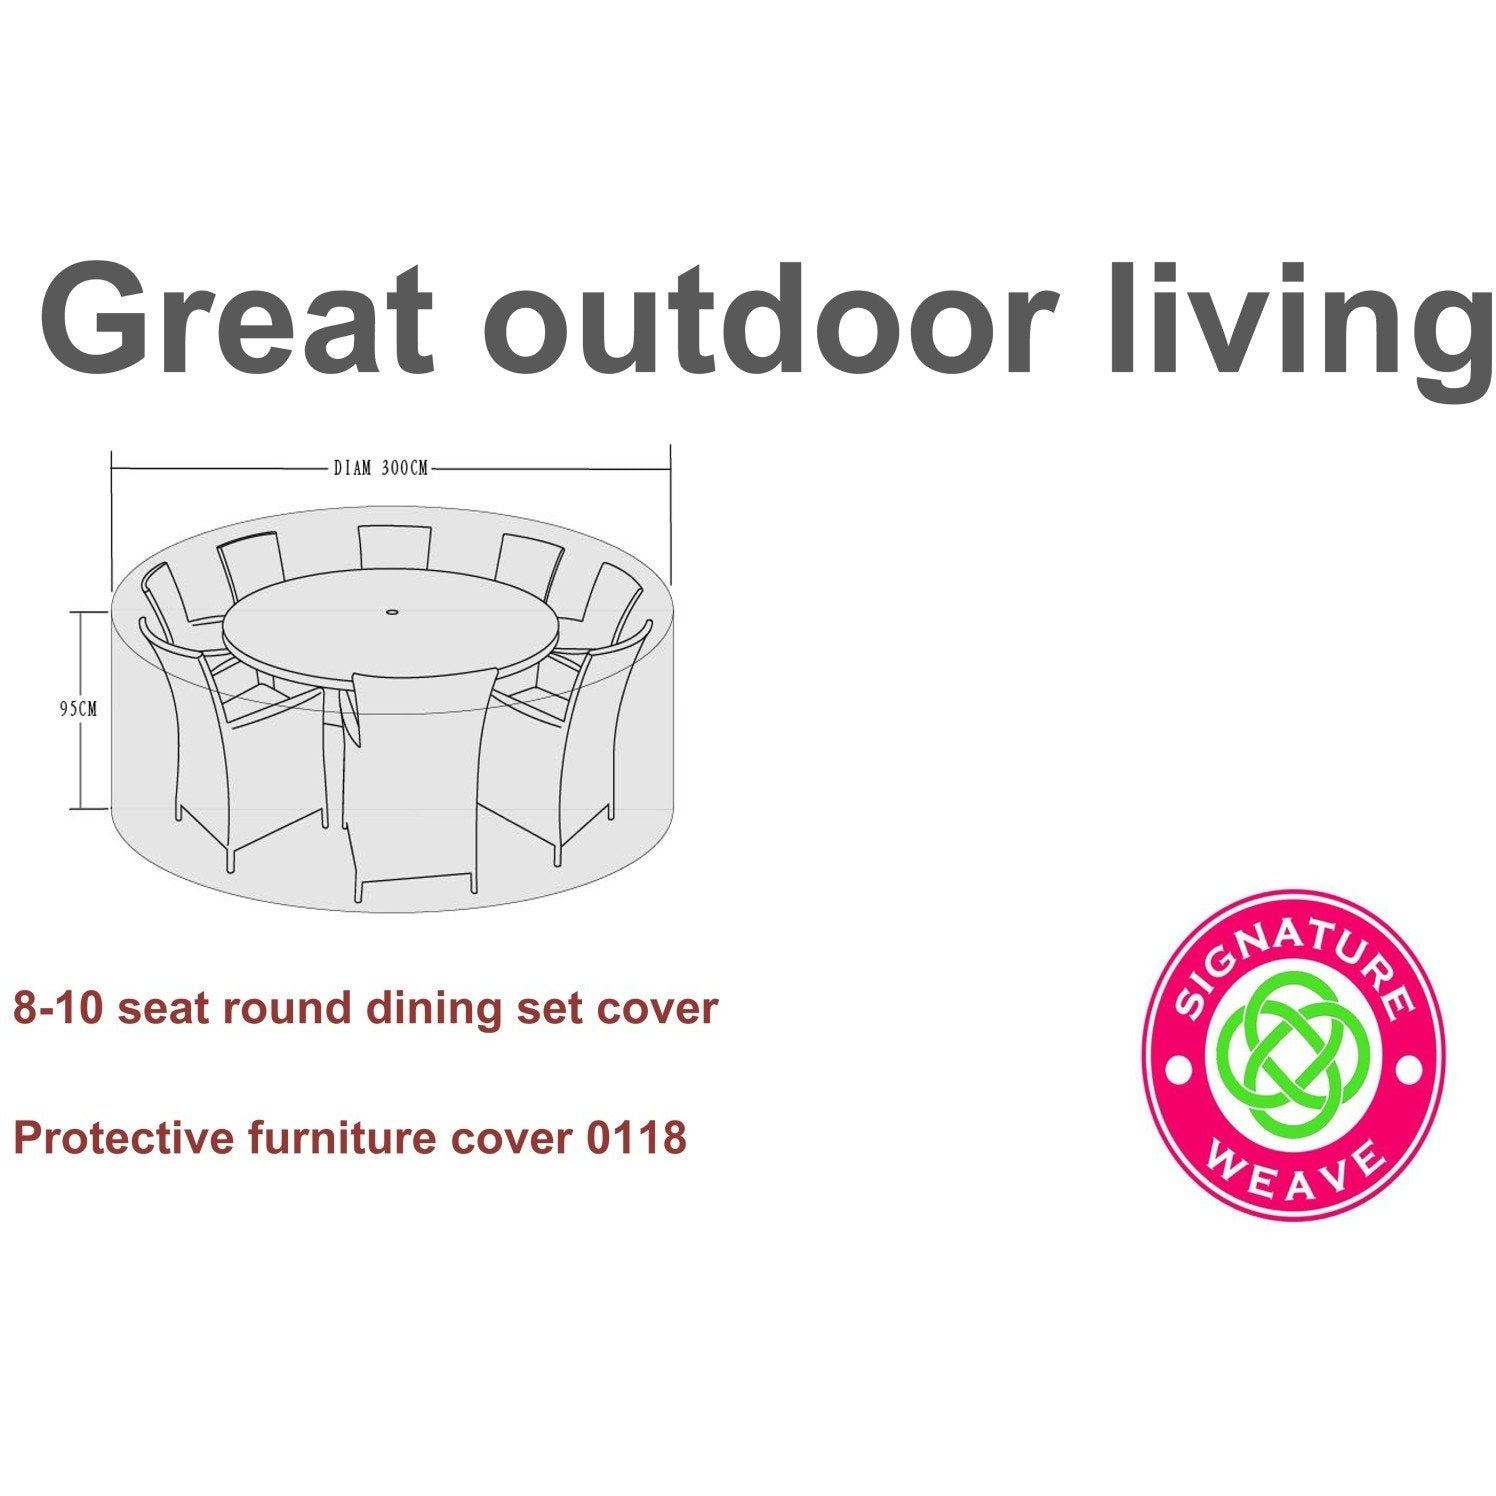 Signature Weave Protective furniture cover for 8-10 seat dining sets - GardenPromos